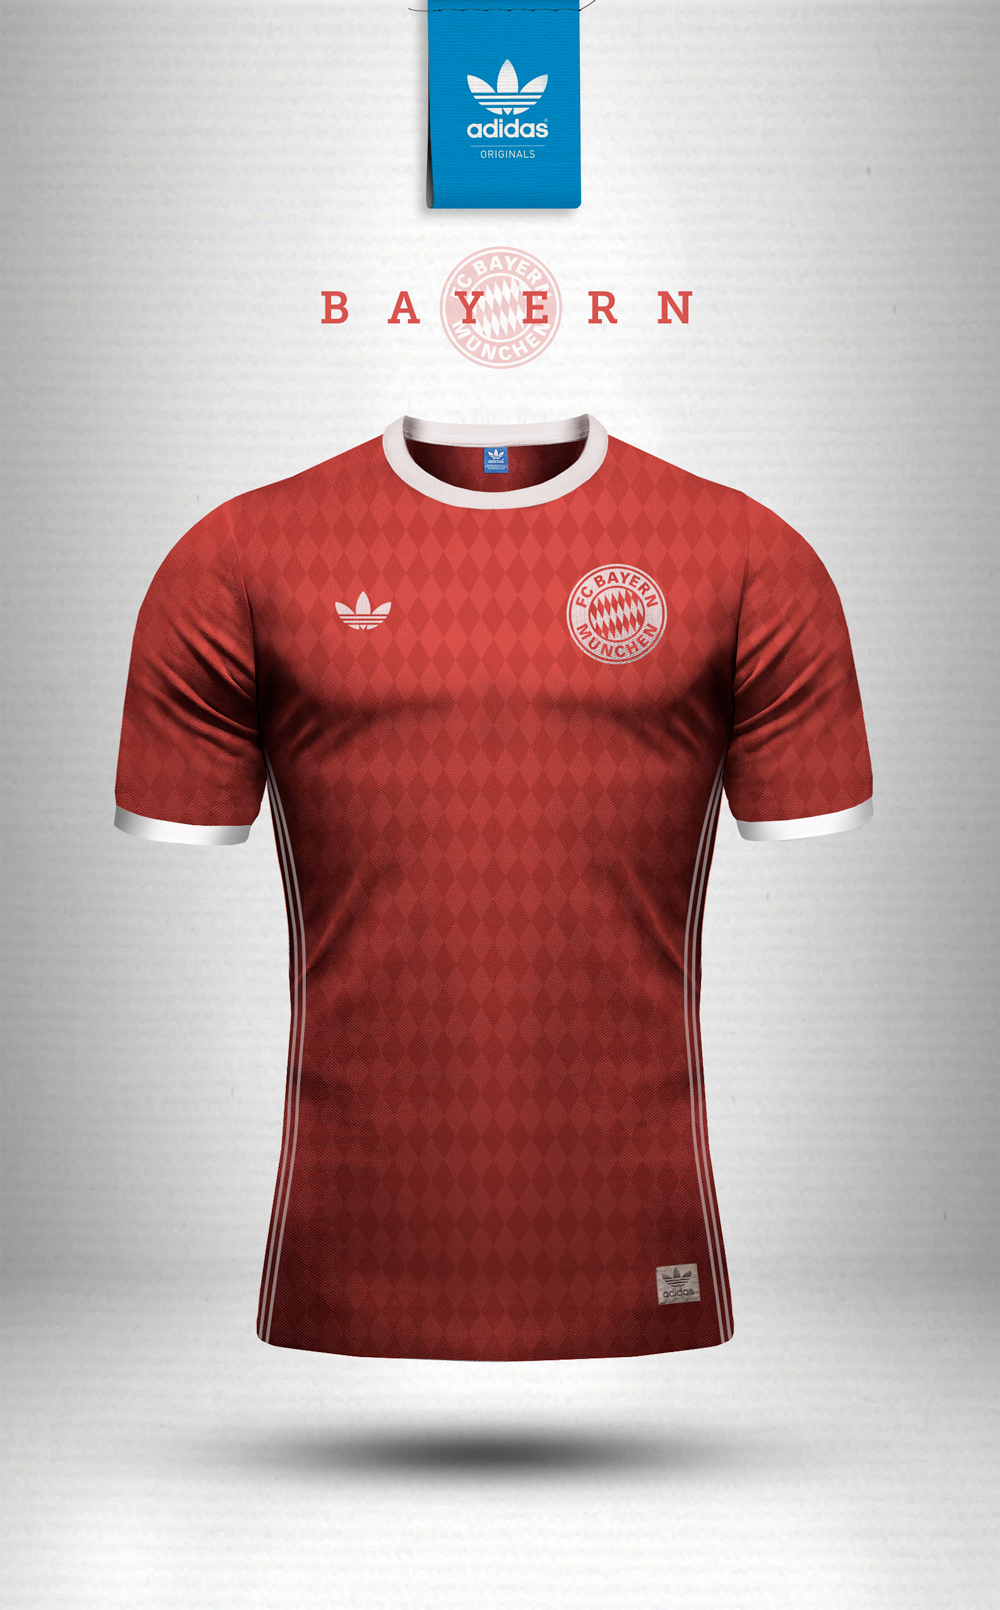 c6ea3cccc1514 Adidas Originals and Nike Sportswear jersey design concepts using geometric  patterns.